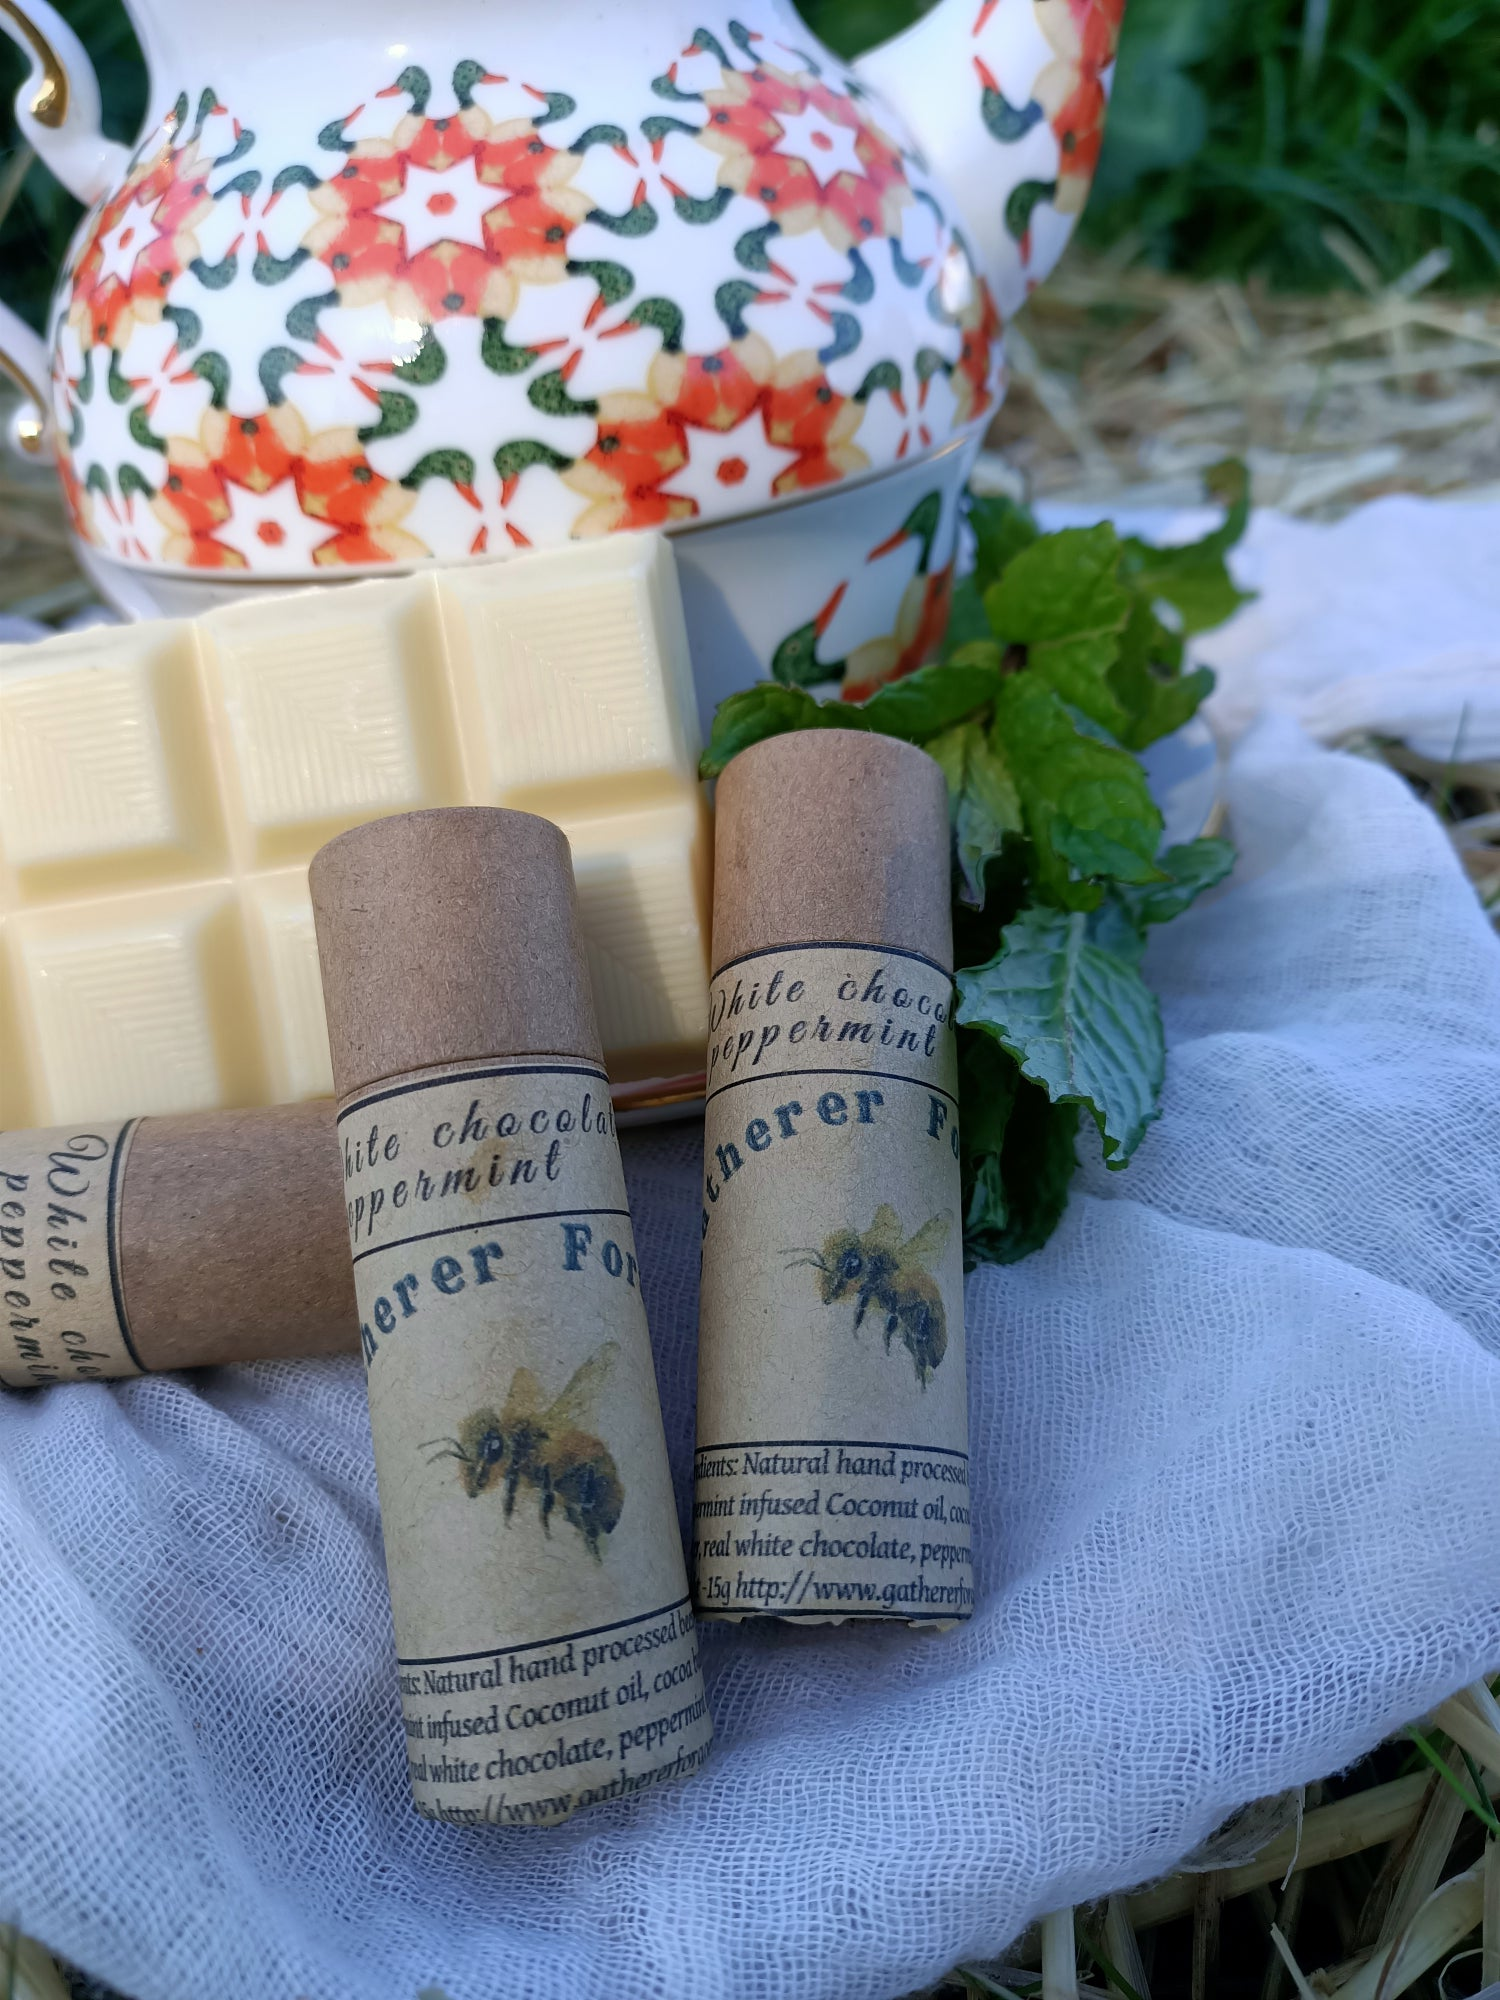 White chocolate and peppermint beeswax lip balm